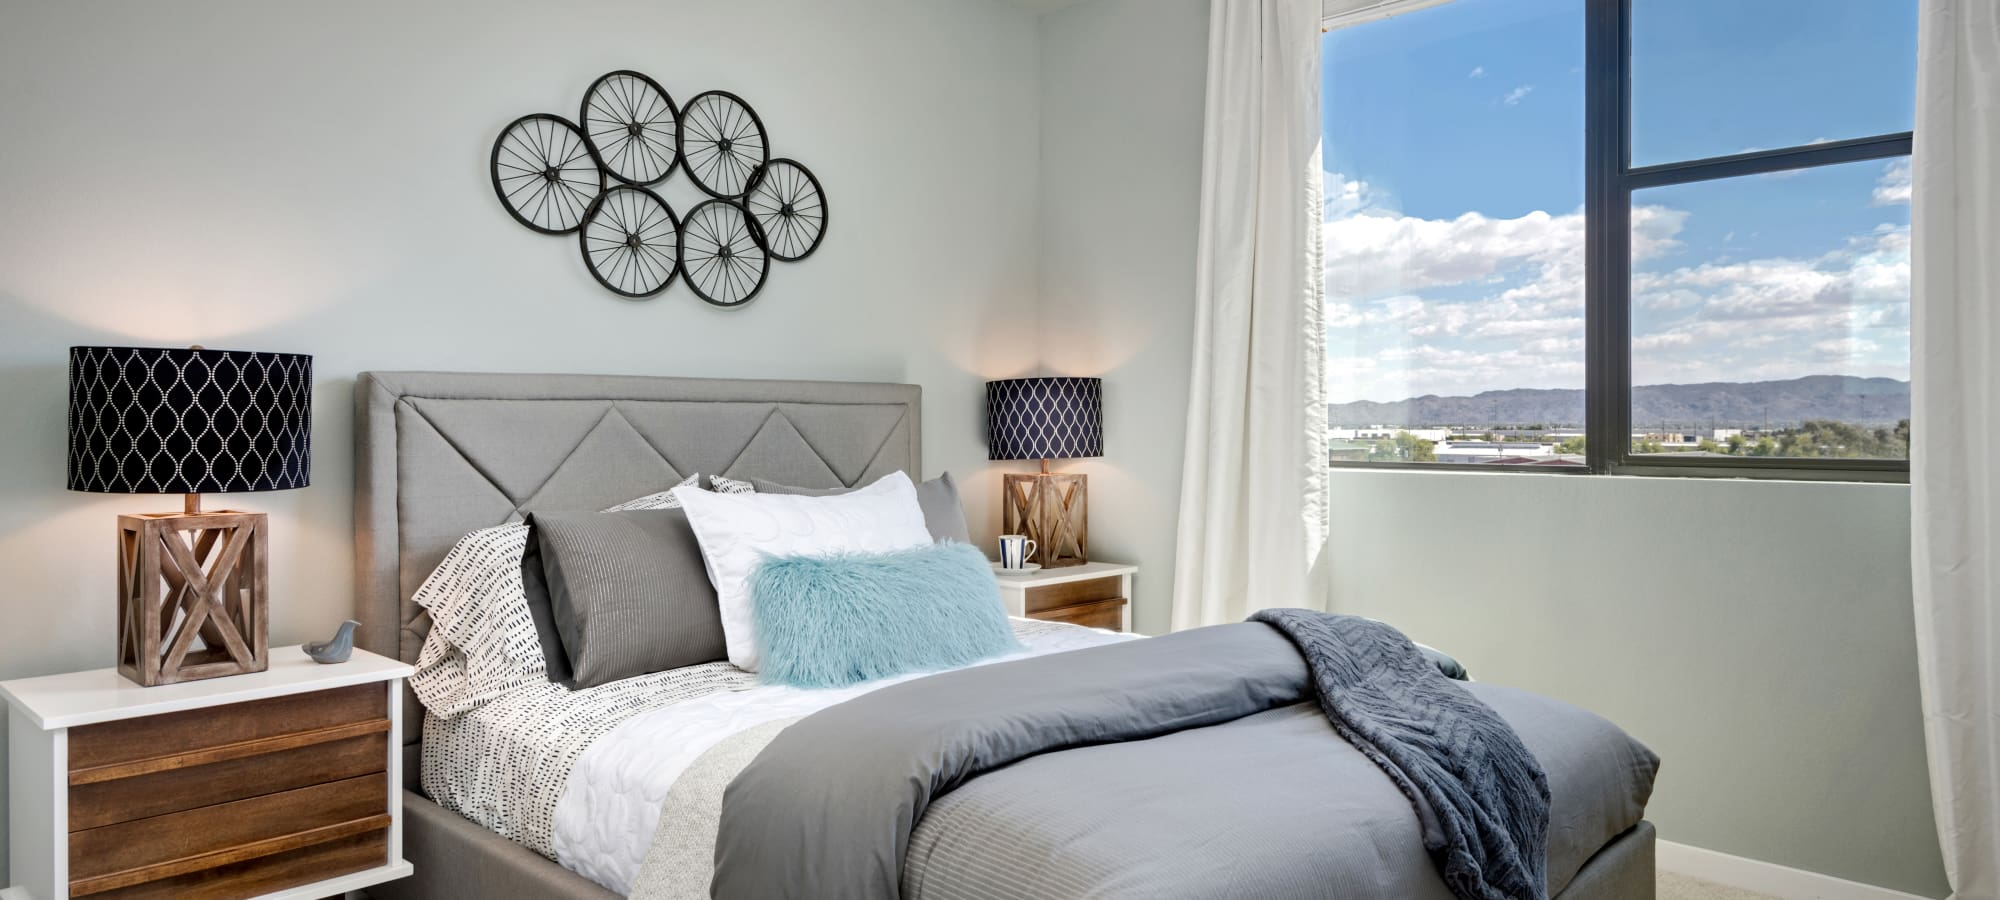 Bedroom with large bay windows in model home at Capital Place in Phoenix, Arizona